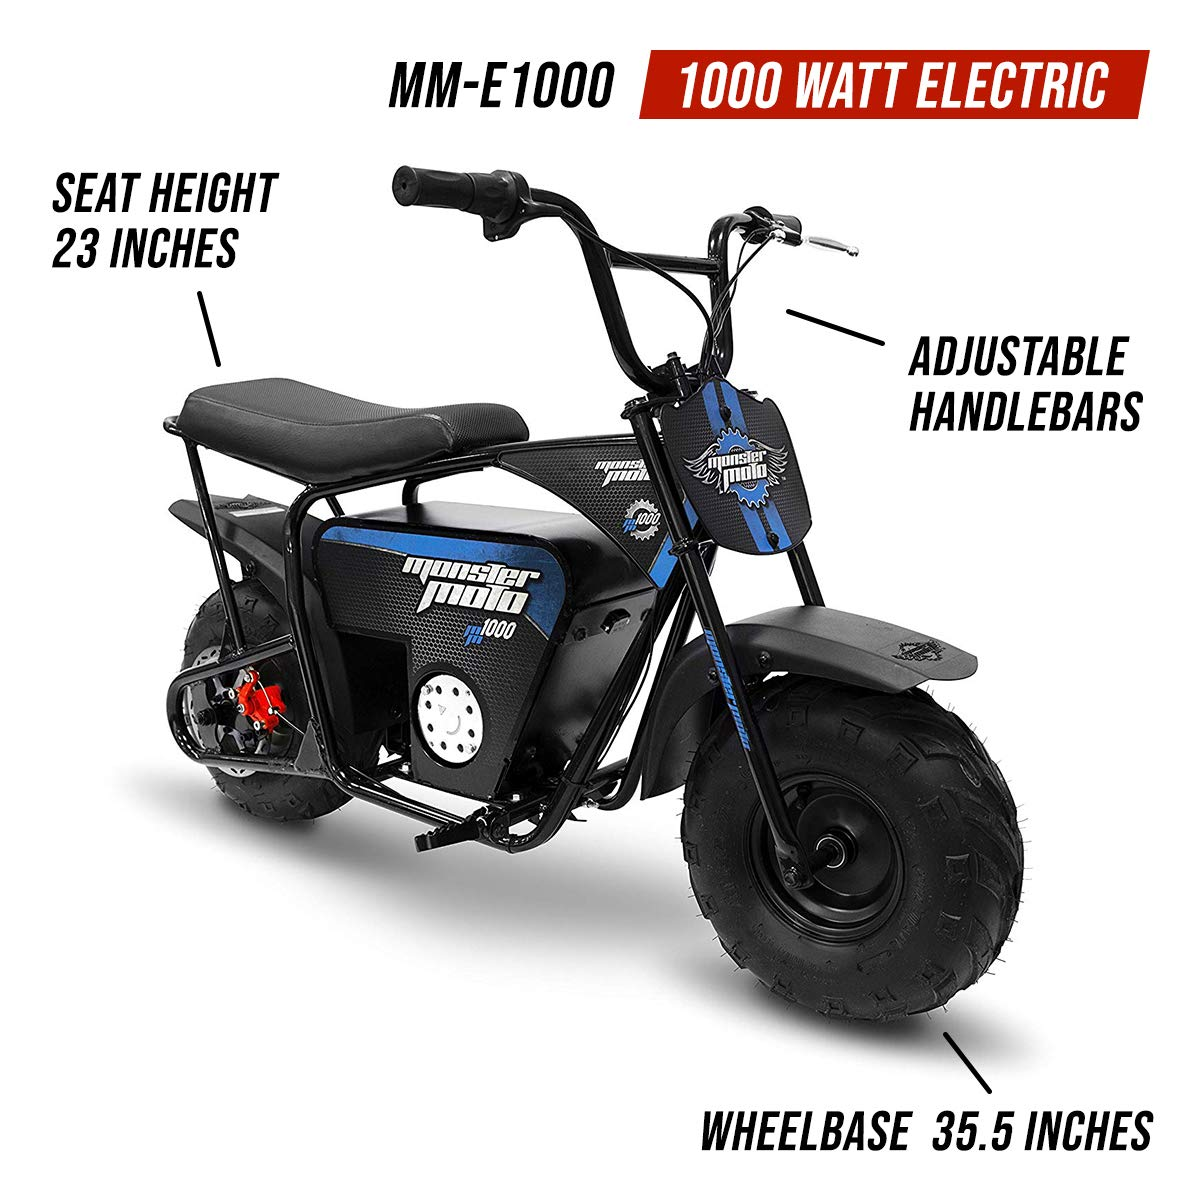 Monster Moto Mm E1000 Bb Electric Mini Bike Assembled Manual Cableado Electrico Minimoto Chopper 49 In The Usa 1000watt Blue Black Automotive